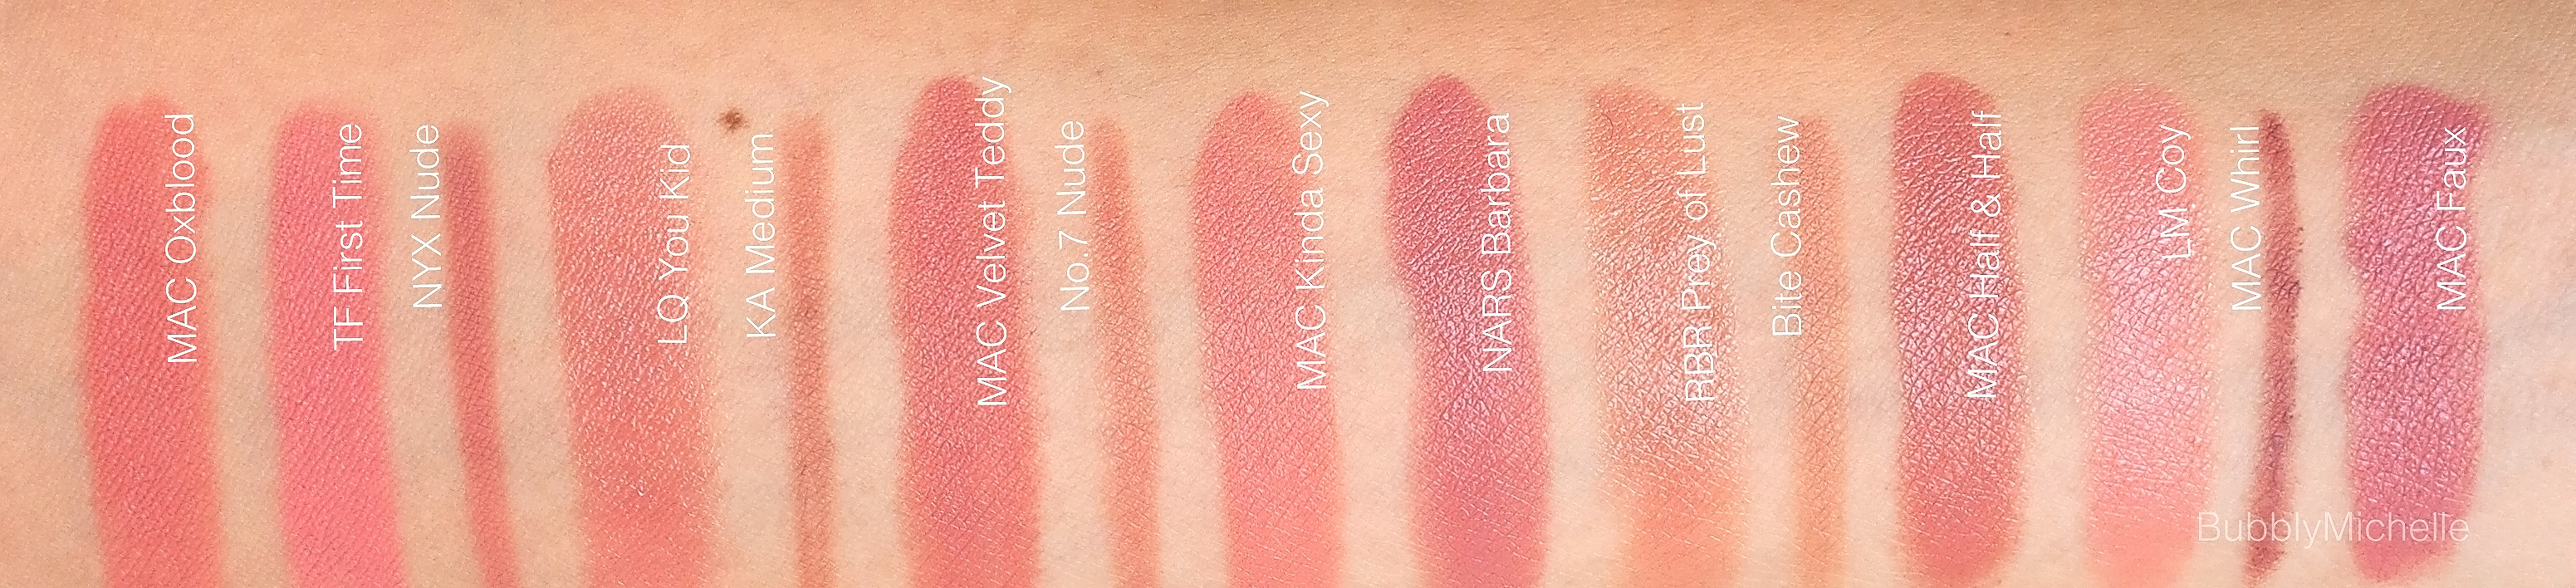 Nude Lip Liners 101  Bubbly Michelle-6176